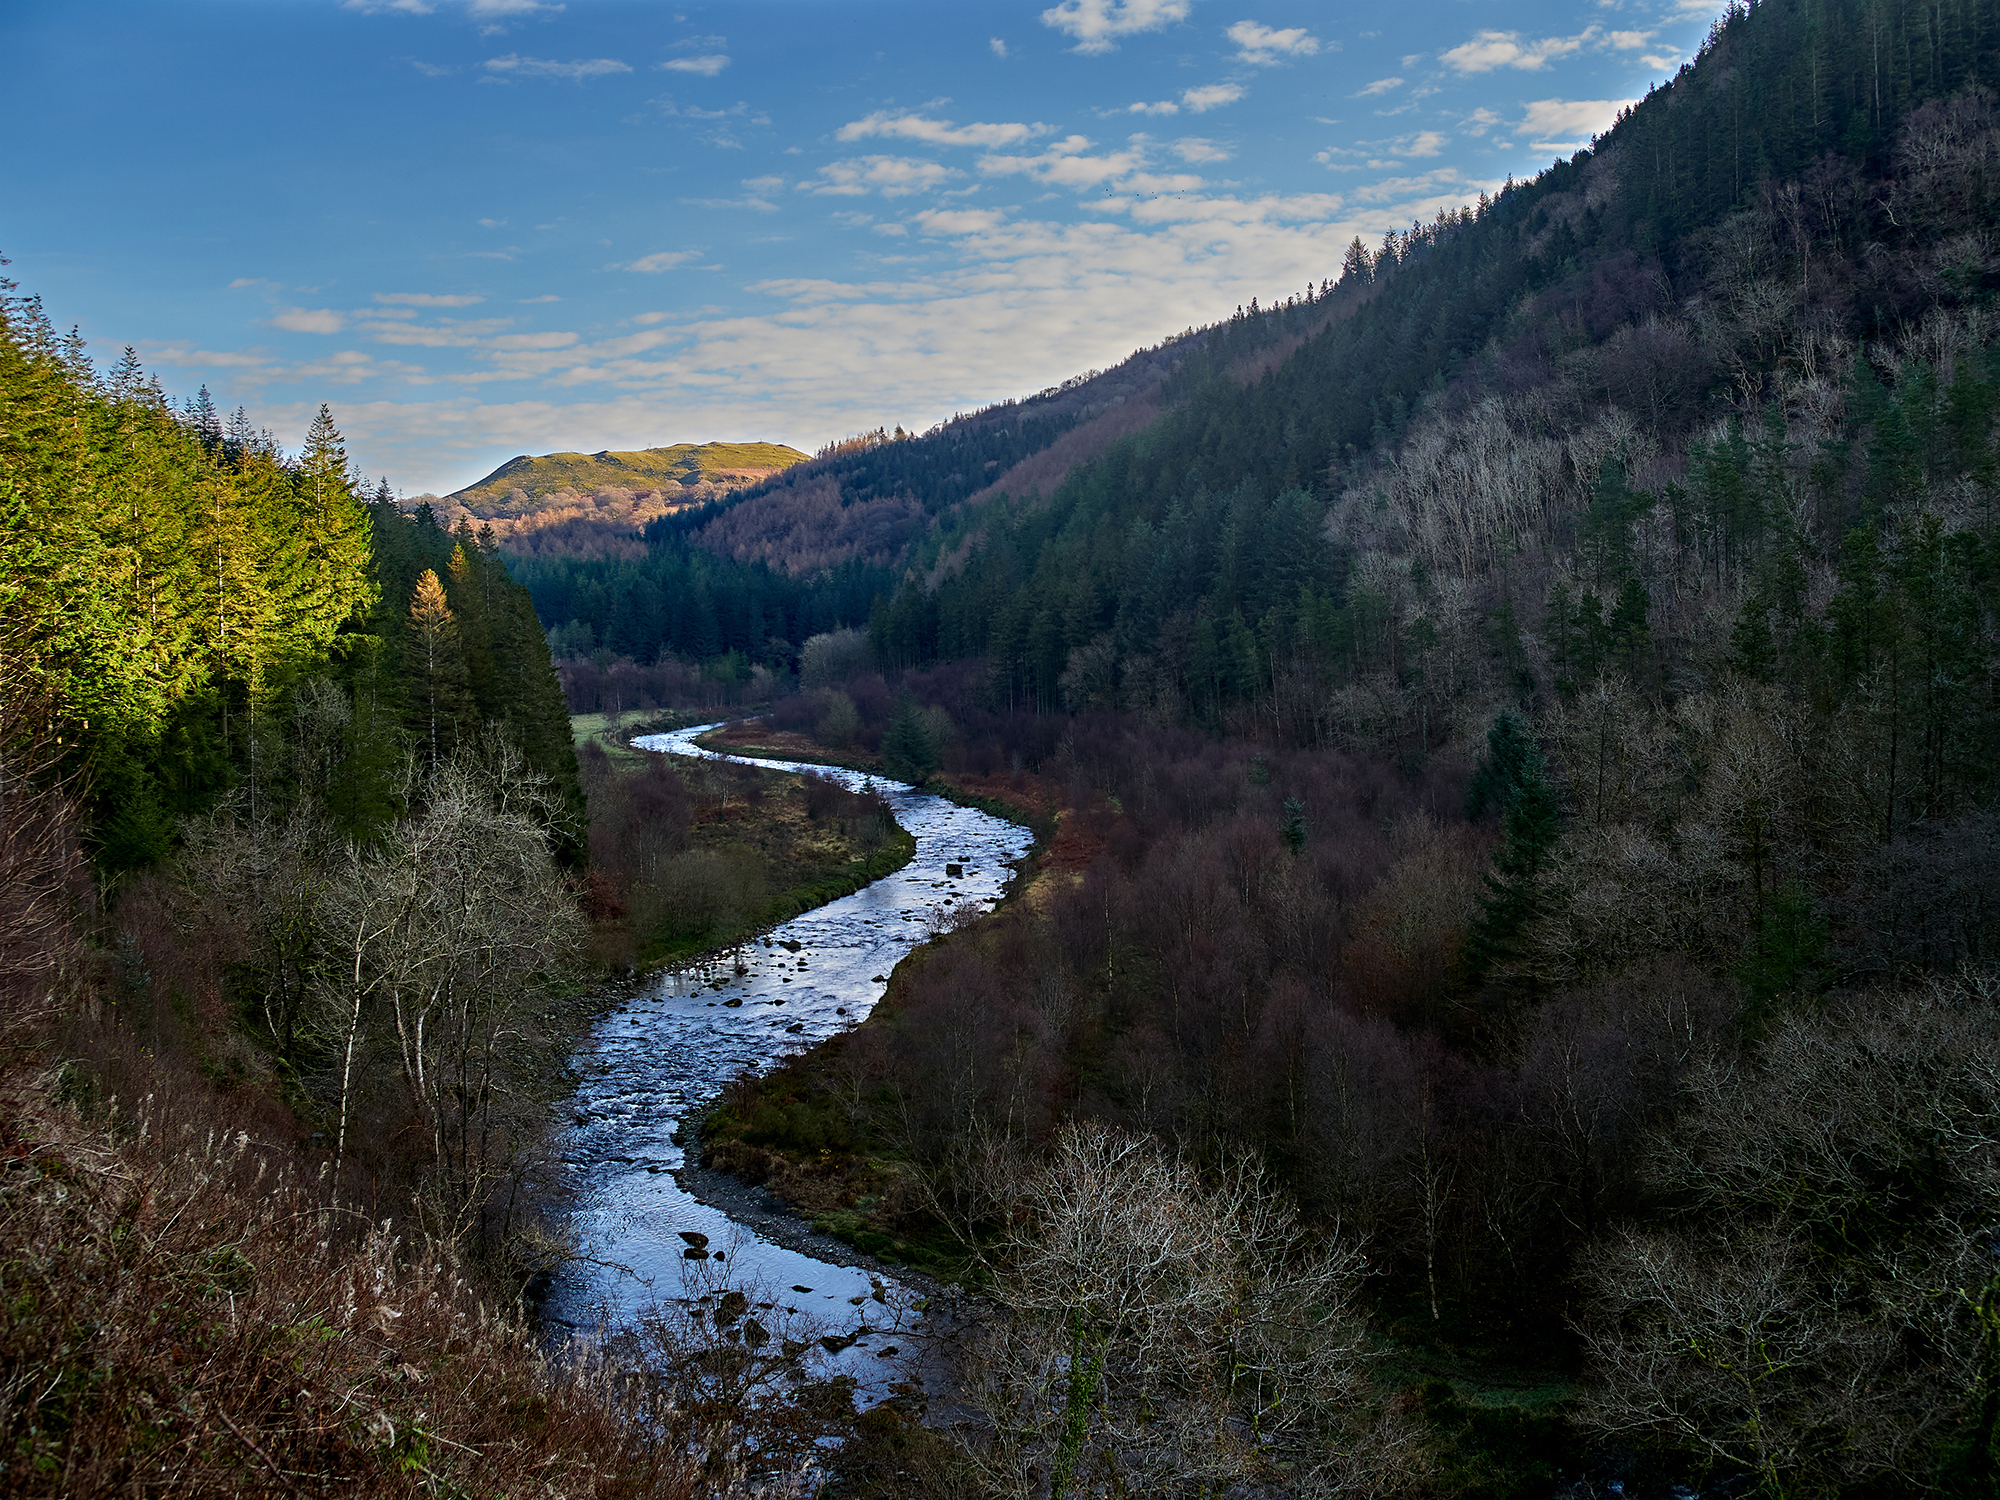 Welsh landscape scene on sunny day with River Ystwyth running through middle of wooded valley